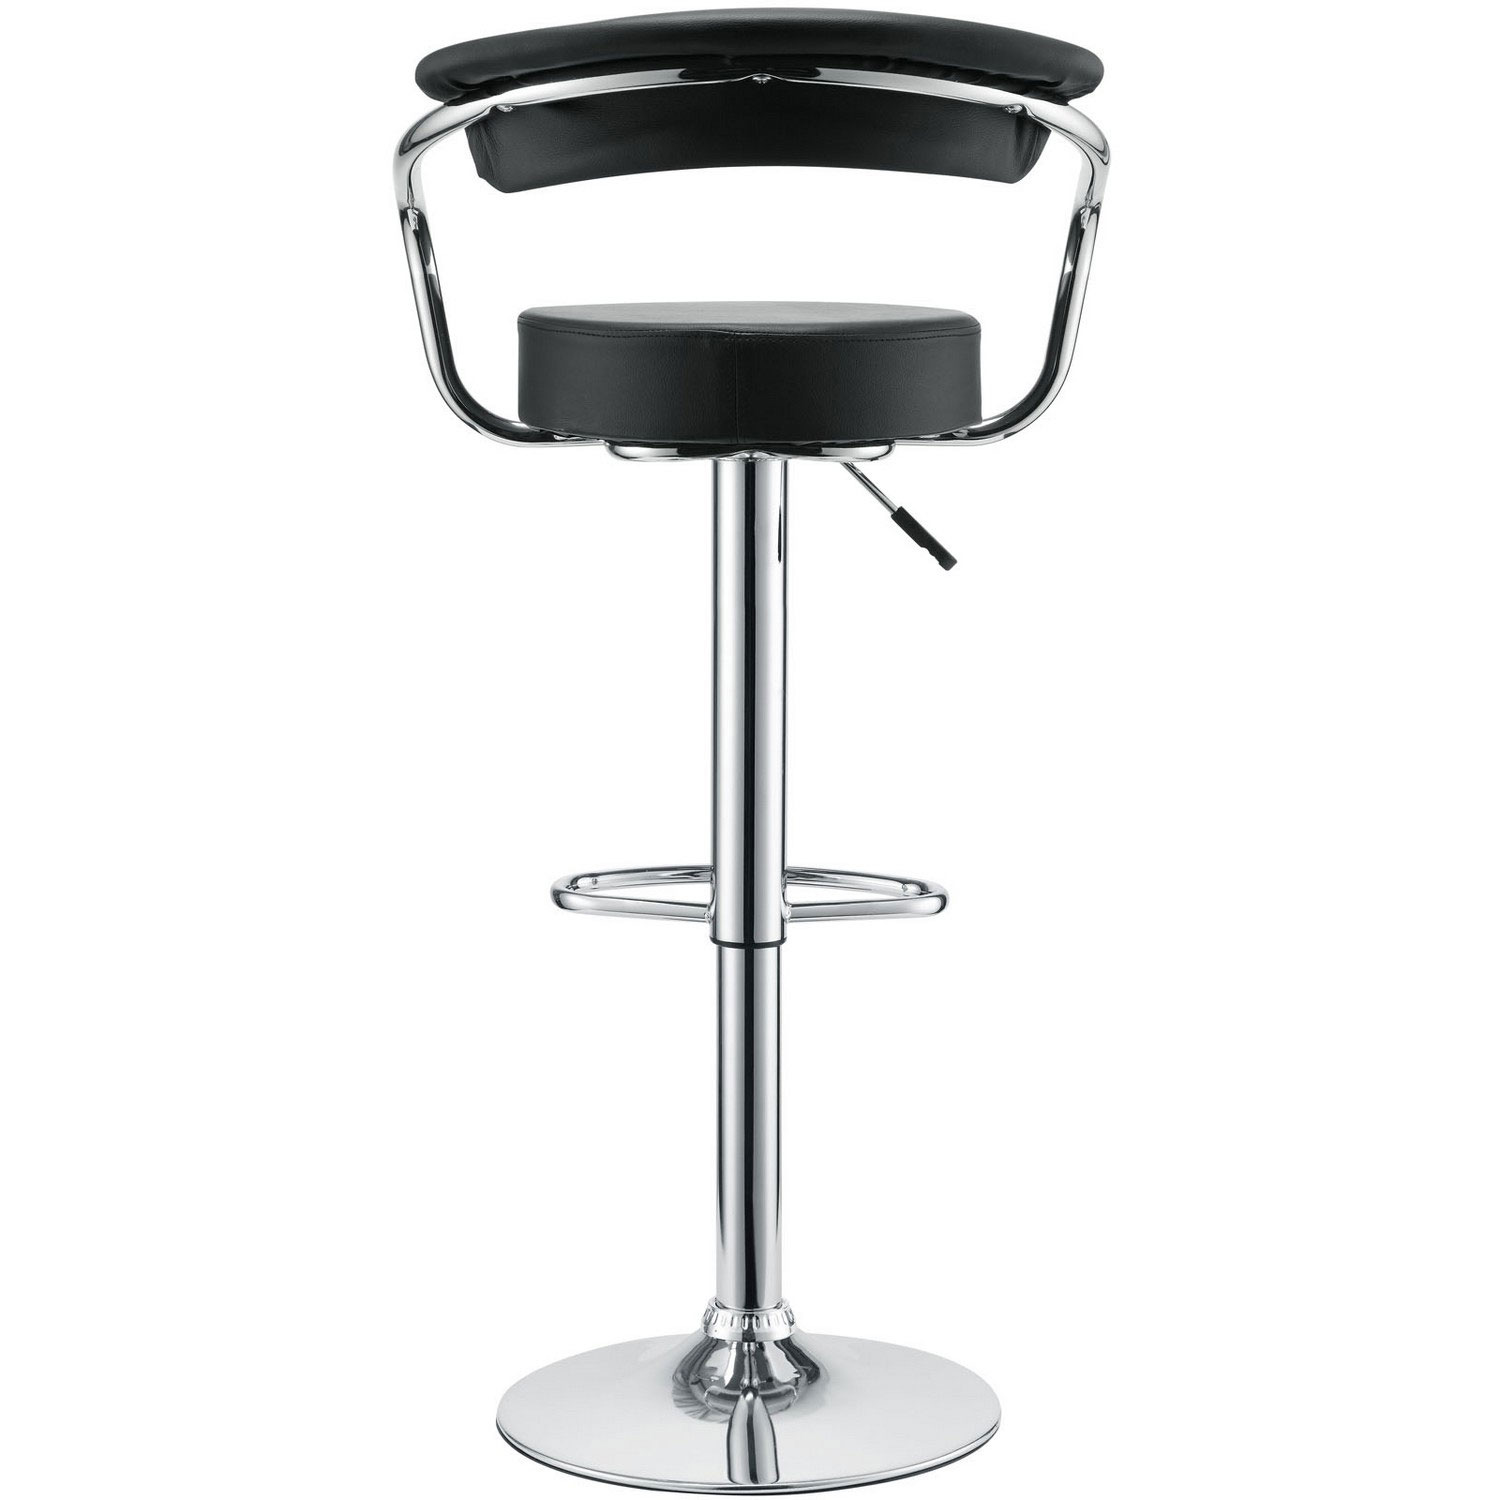 Modway Diner Bar Stool Set of 3 - Black